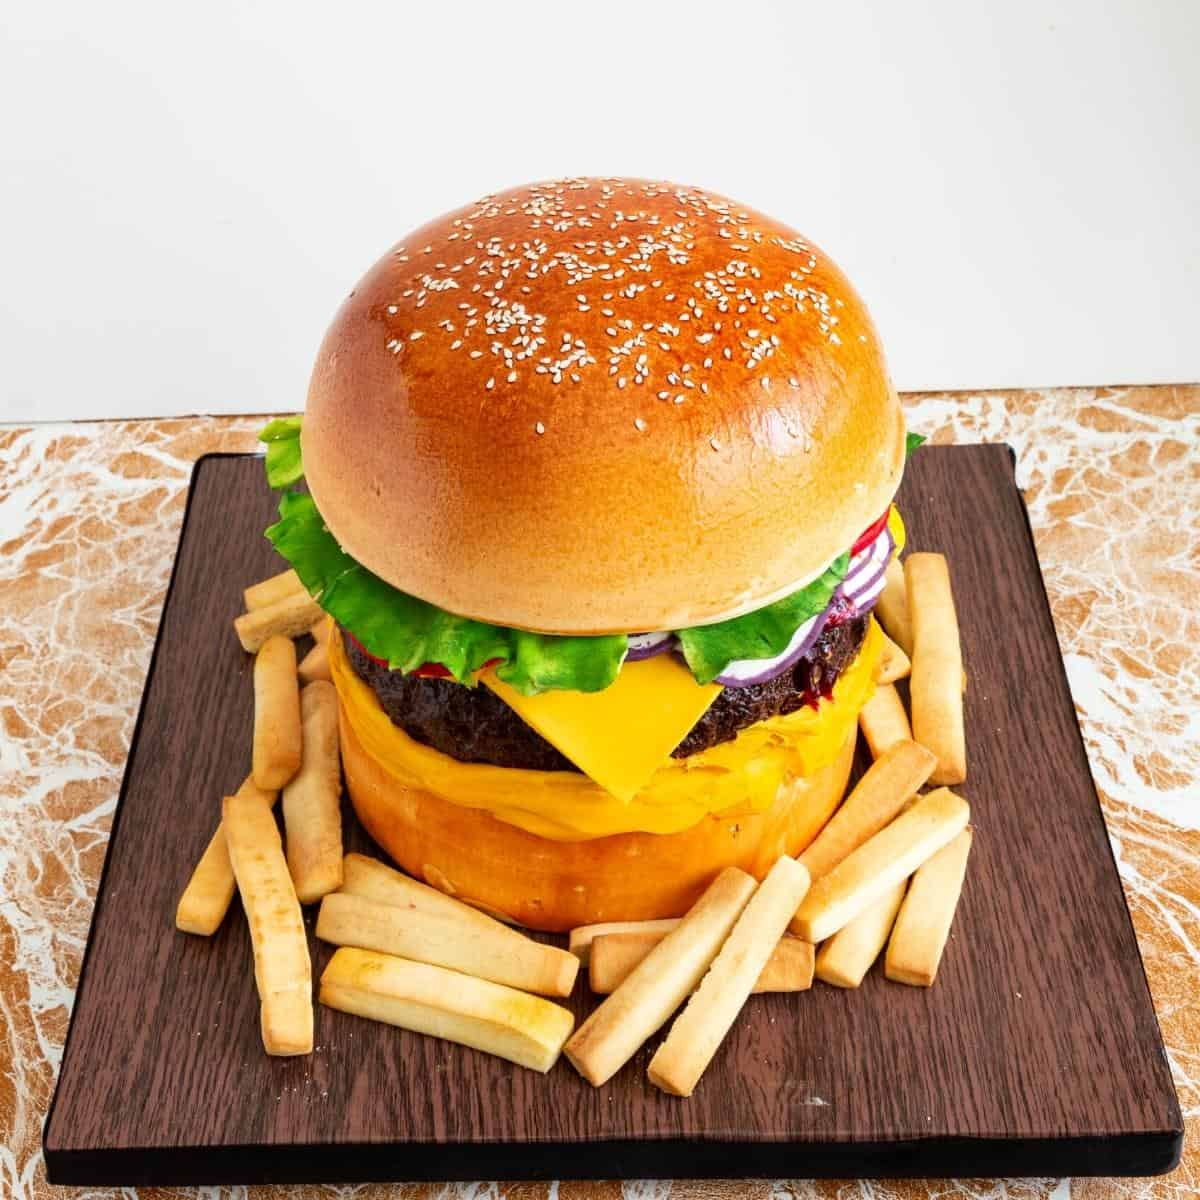 Cake on a cake board with French fries.